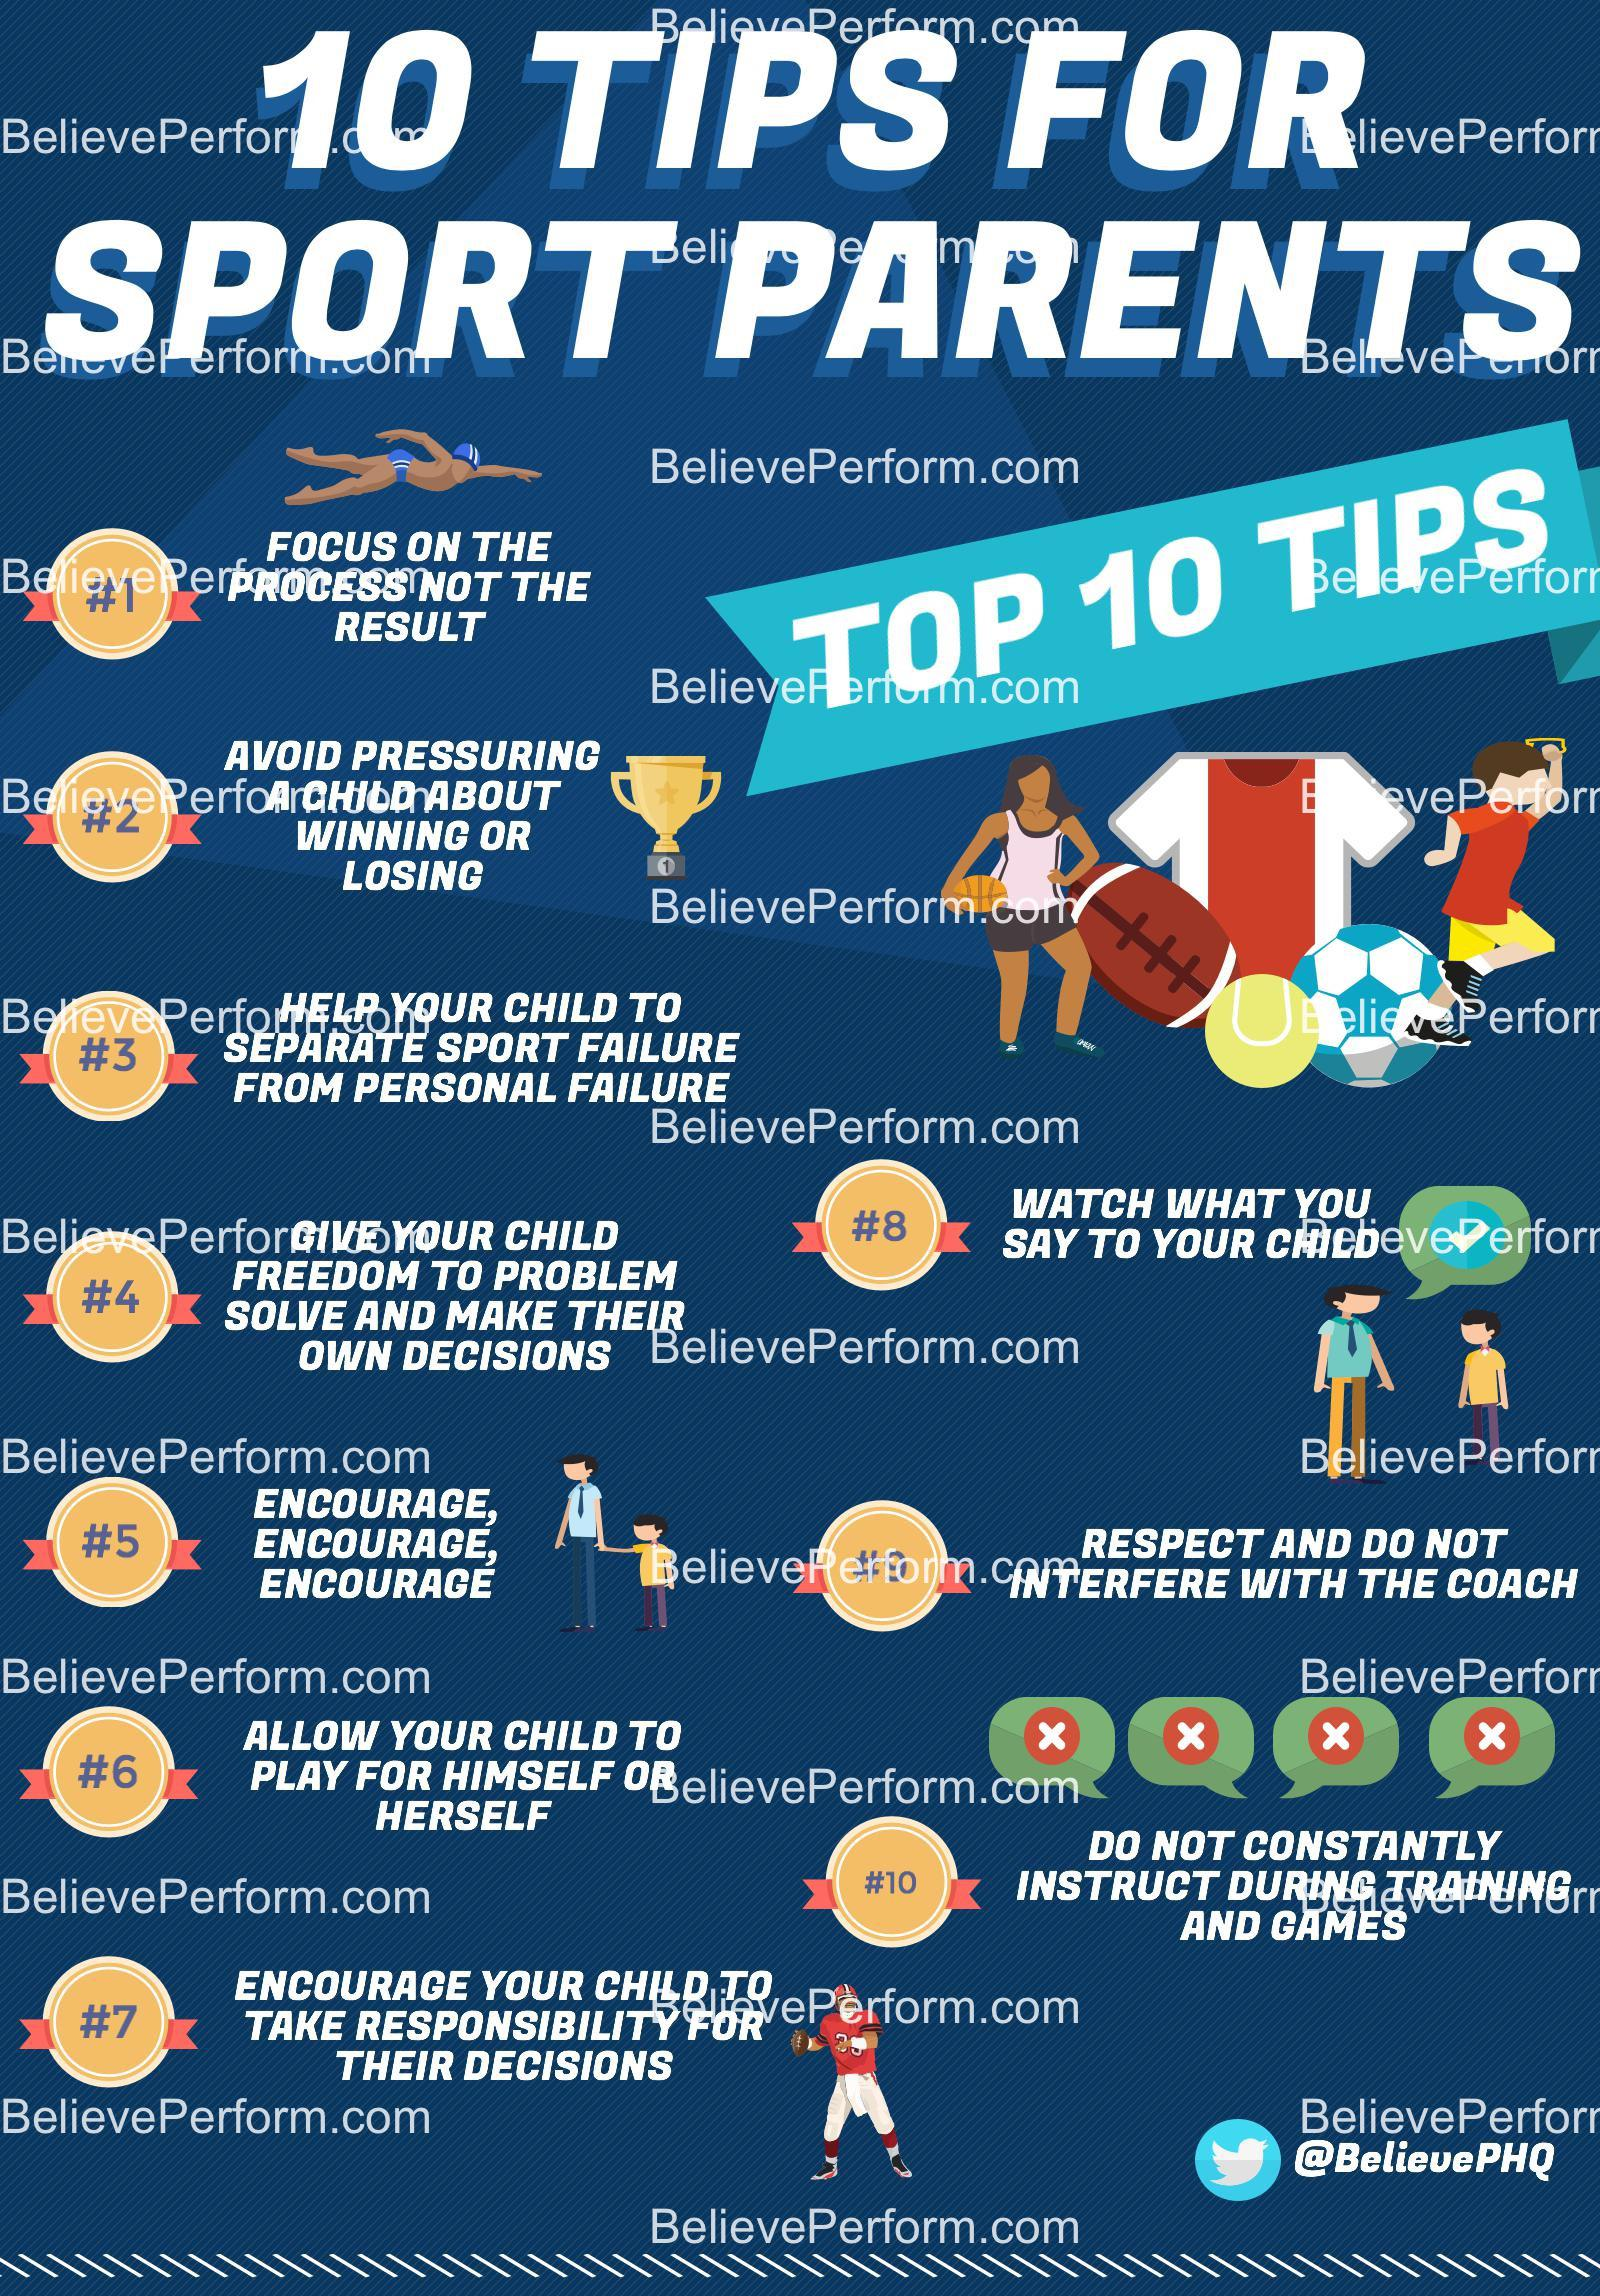 10 top tips for sport parents